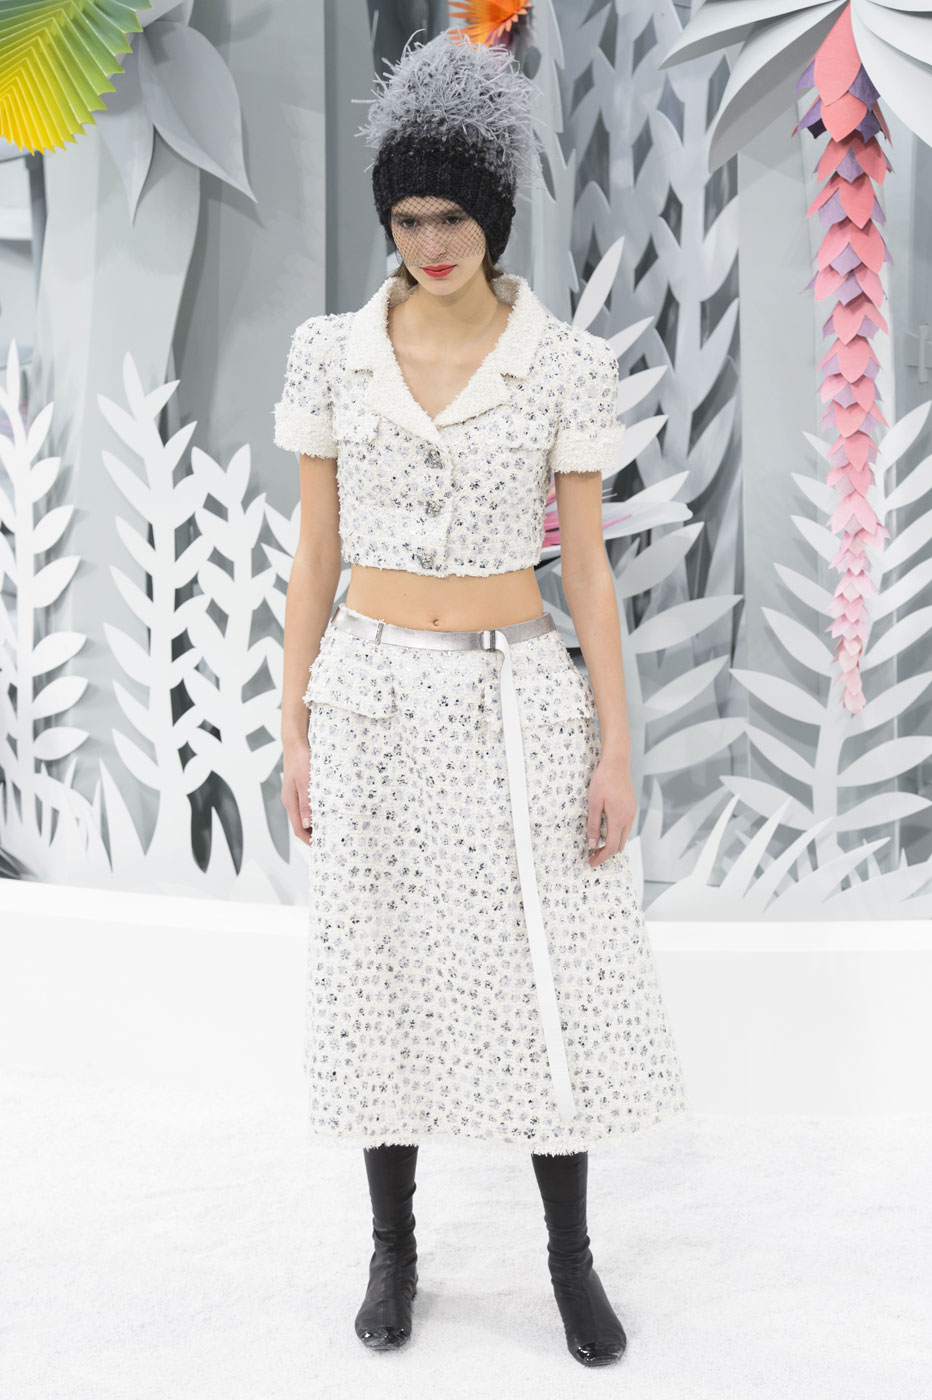 Chanel-fashion-runway-show-haute-couture-paris-spring-summer-2015-the-impression-052